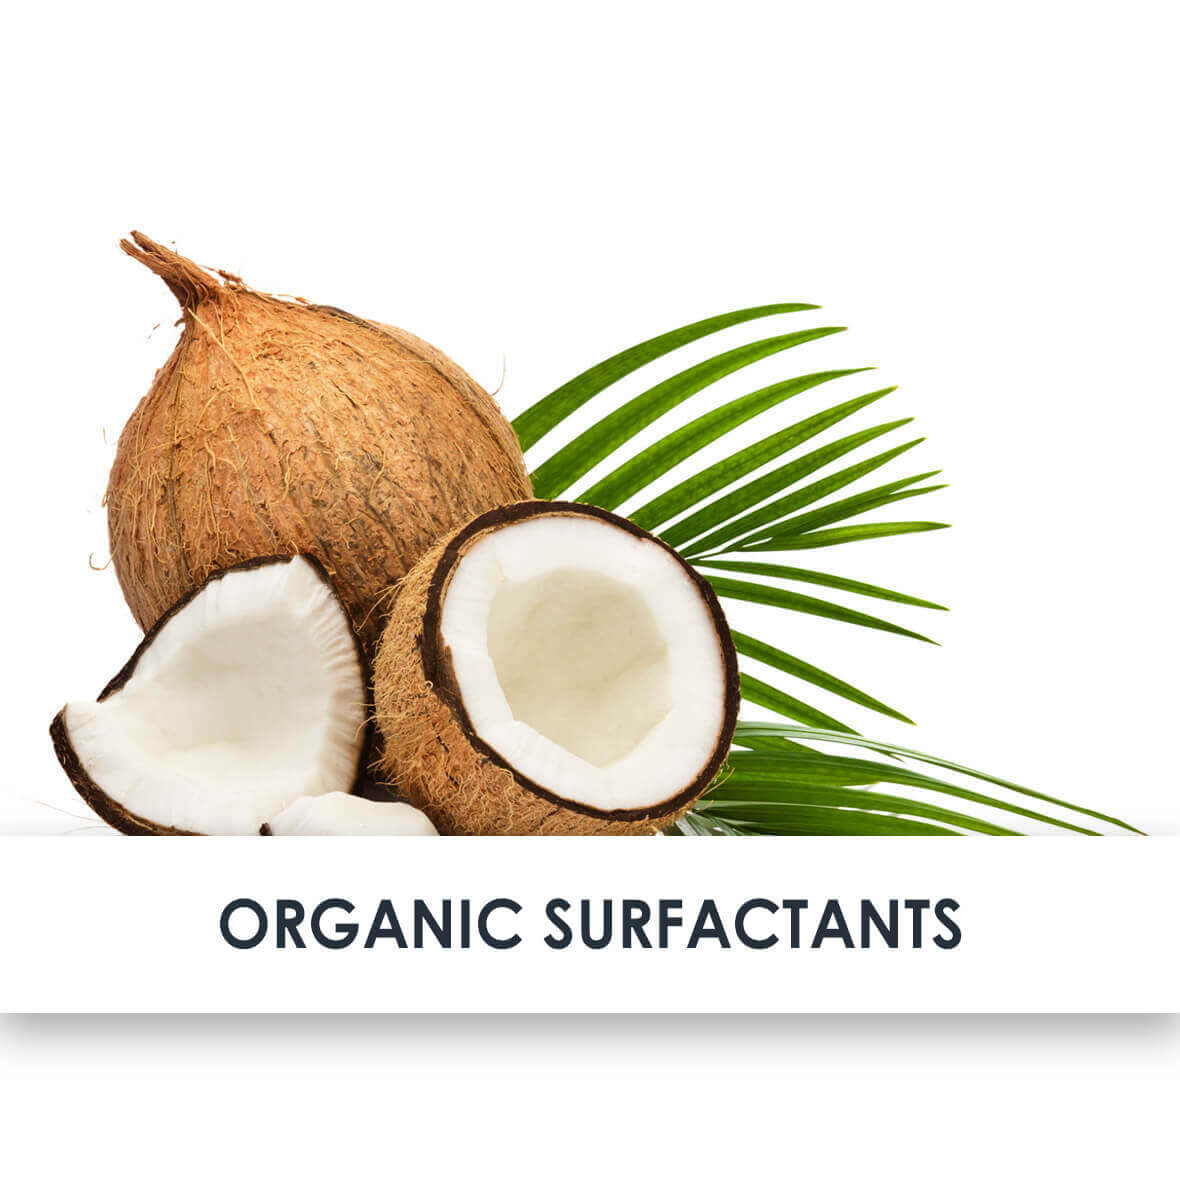 Organic Surfactants Skincare Benefits